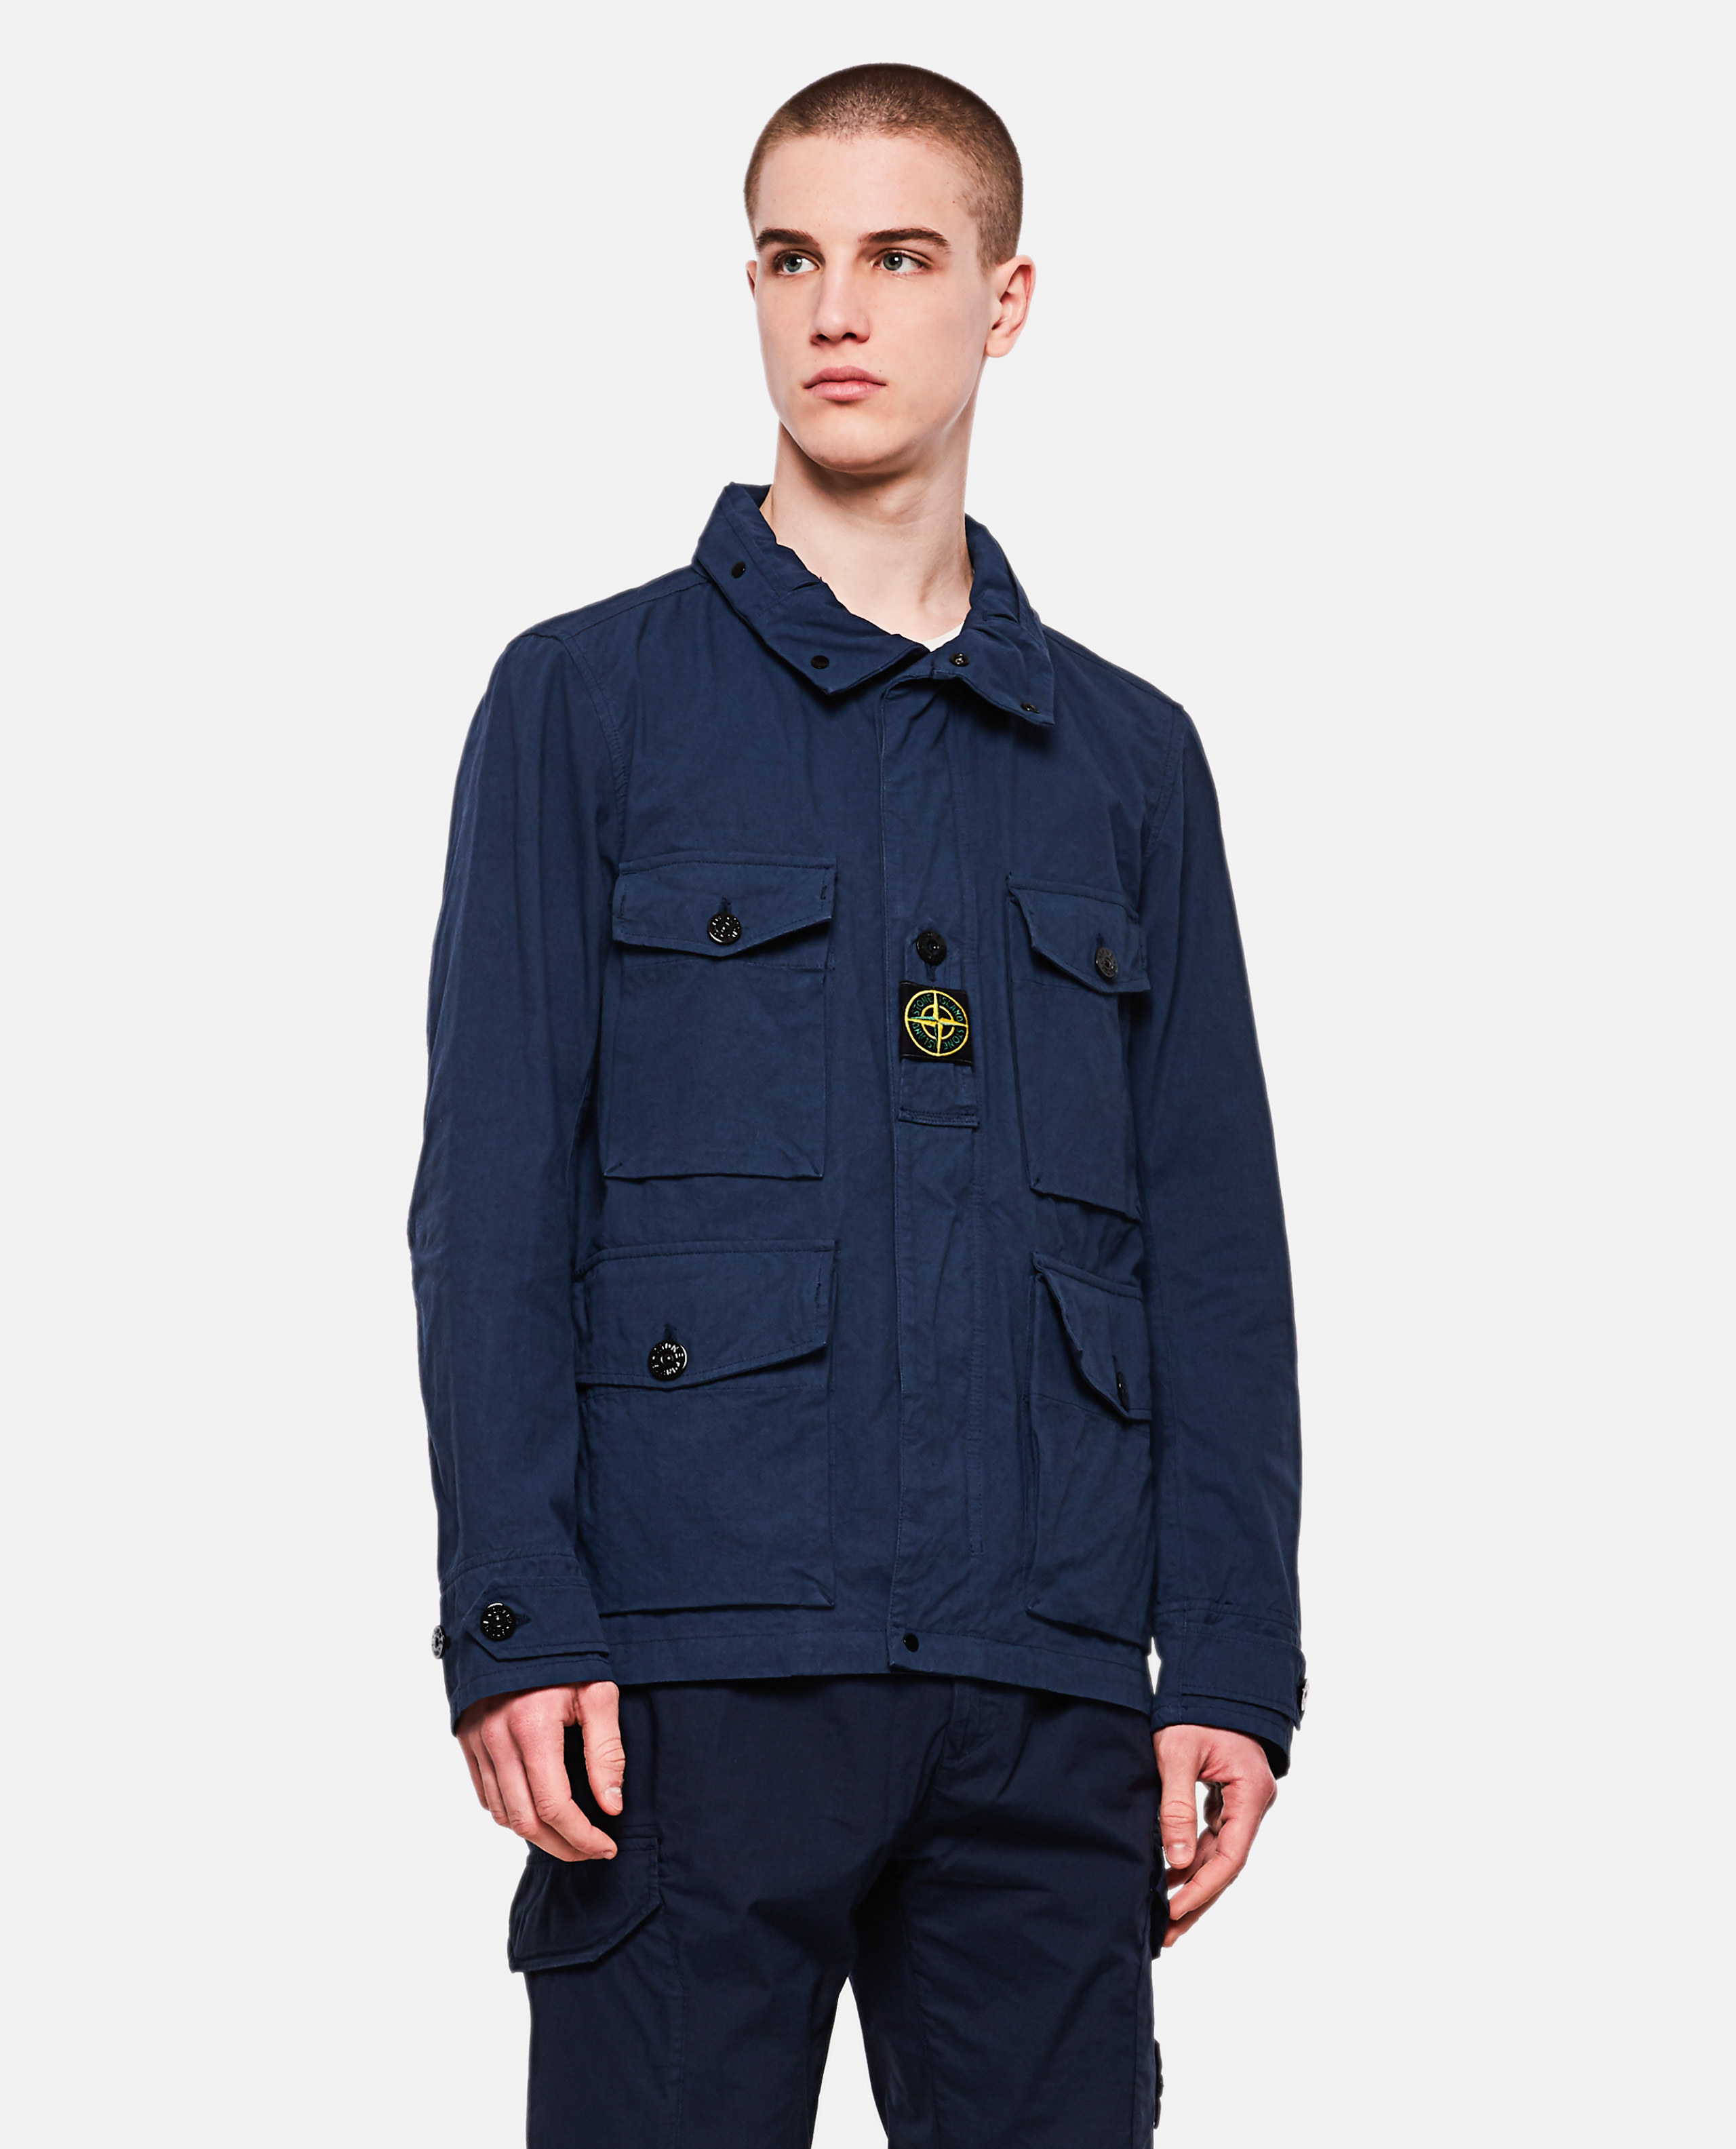 Jacket with zip and button closure